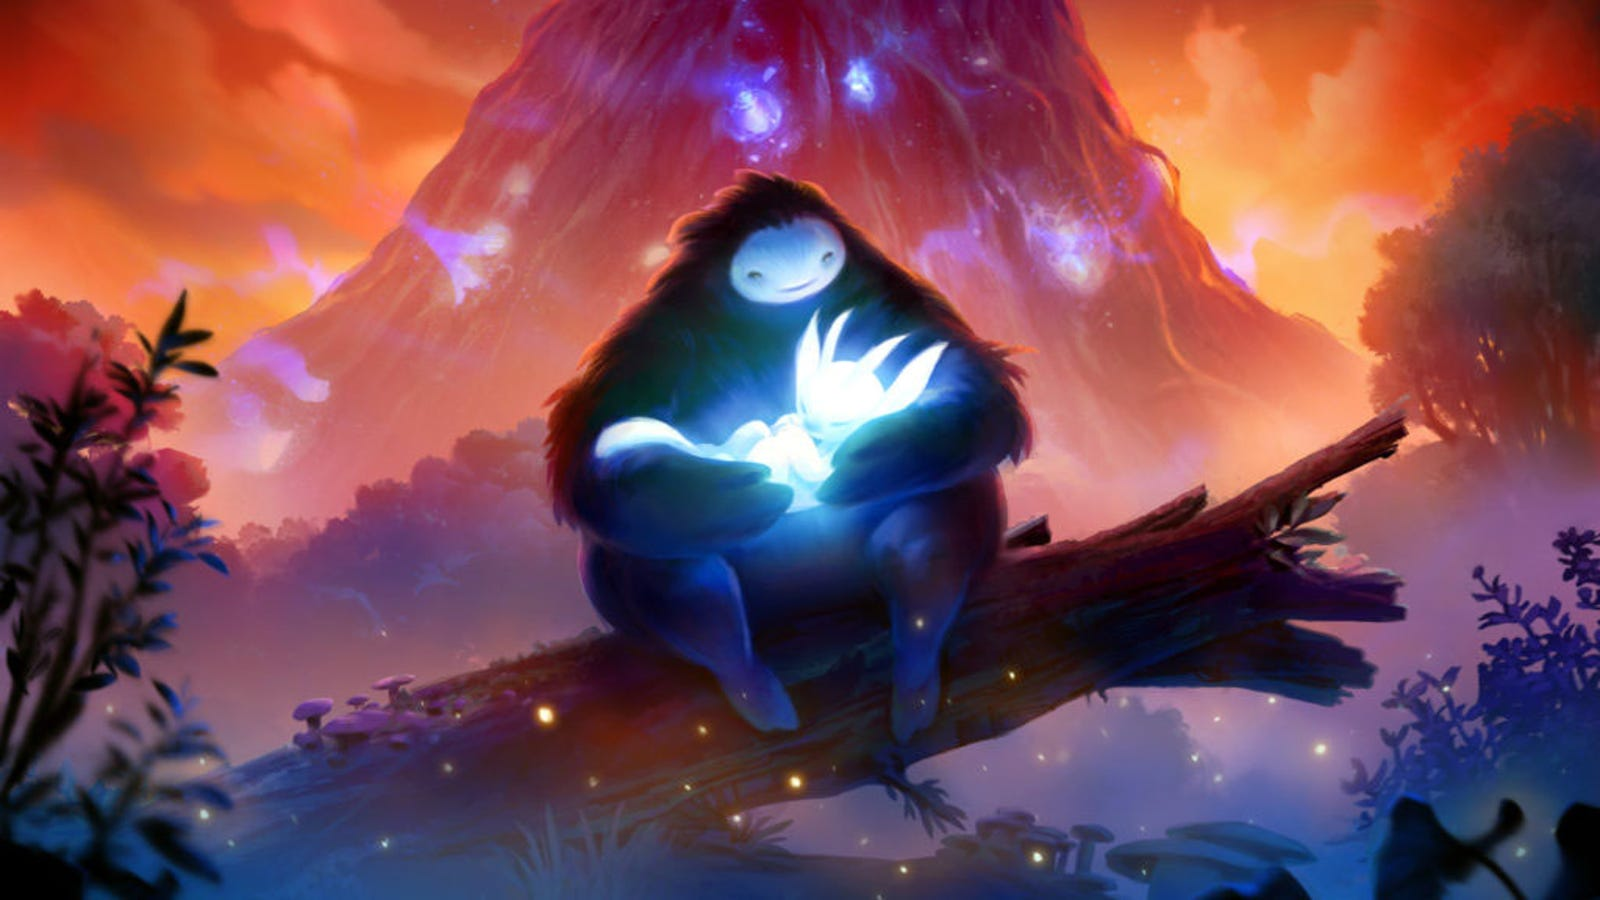 Playing Ori And The Blind Forest On Switch Is A Little Strange But Brings Back Great Memories